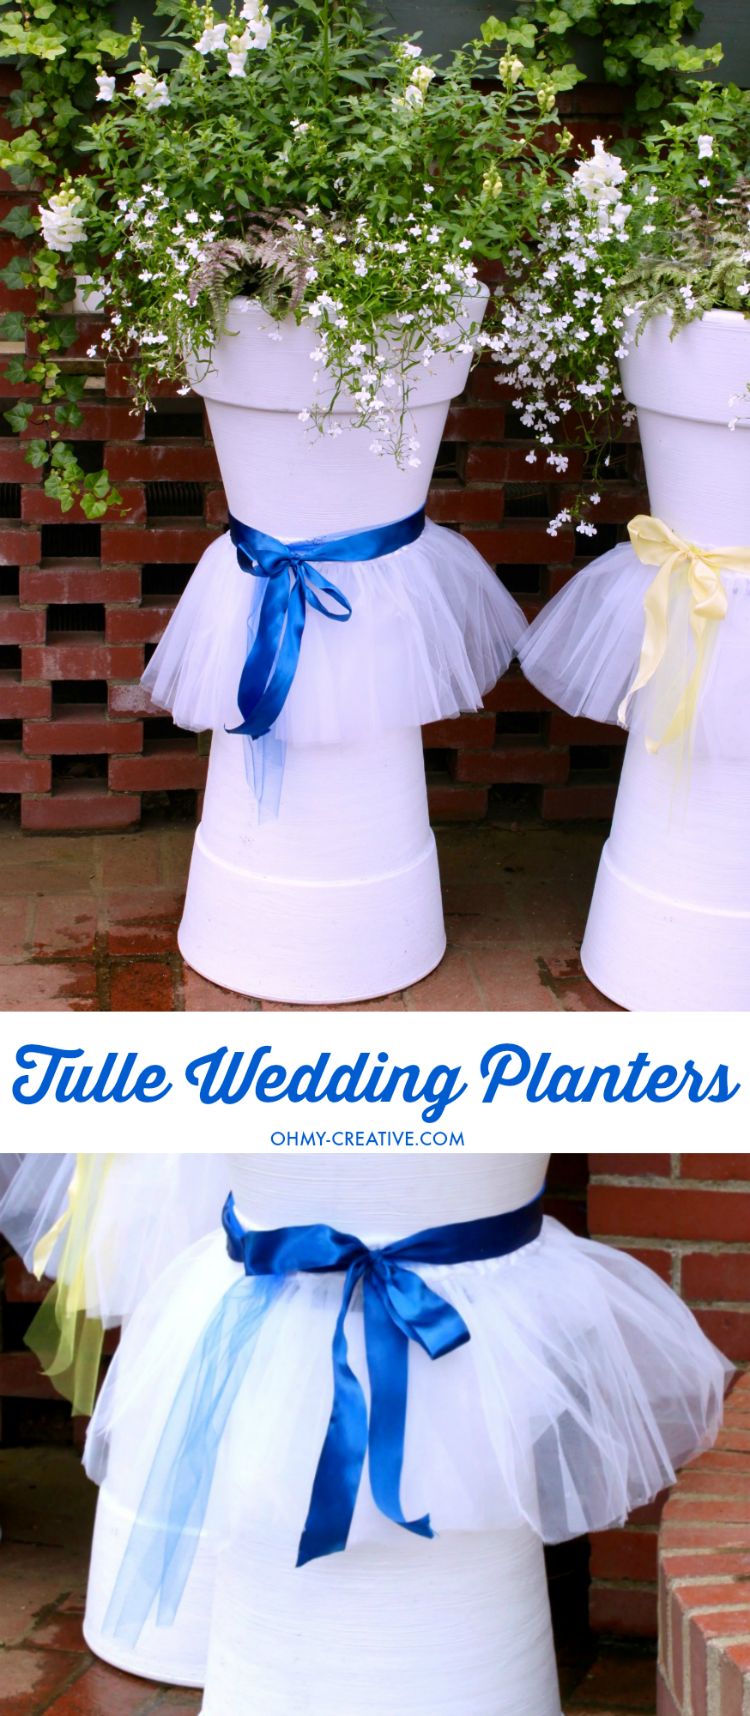 How adorable are these Tulle DIY Wedding Flower Pots for Weddings, Bridal Showers or other Spring or Summer events! Easy to make with white painted flower pots, ribbon and tulle! A great tulle tutu planter! | OHMY-CREATIVE.COM #OMHGWW